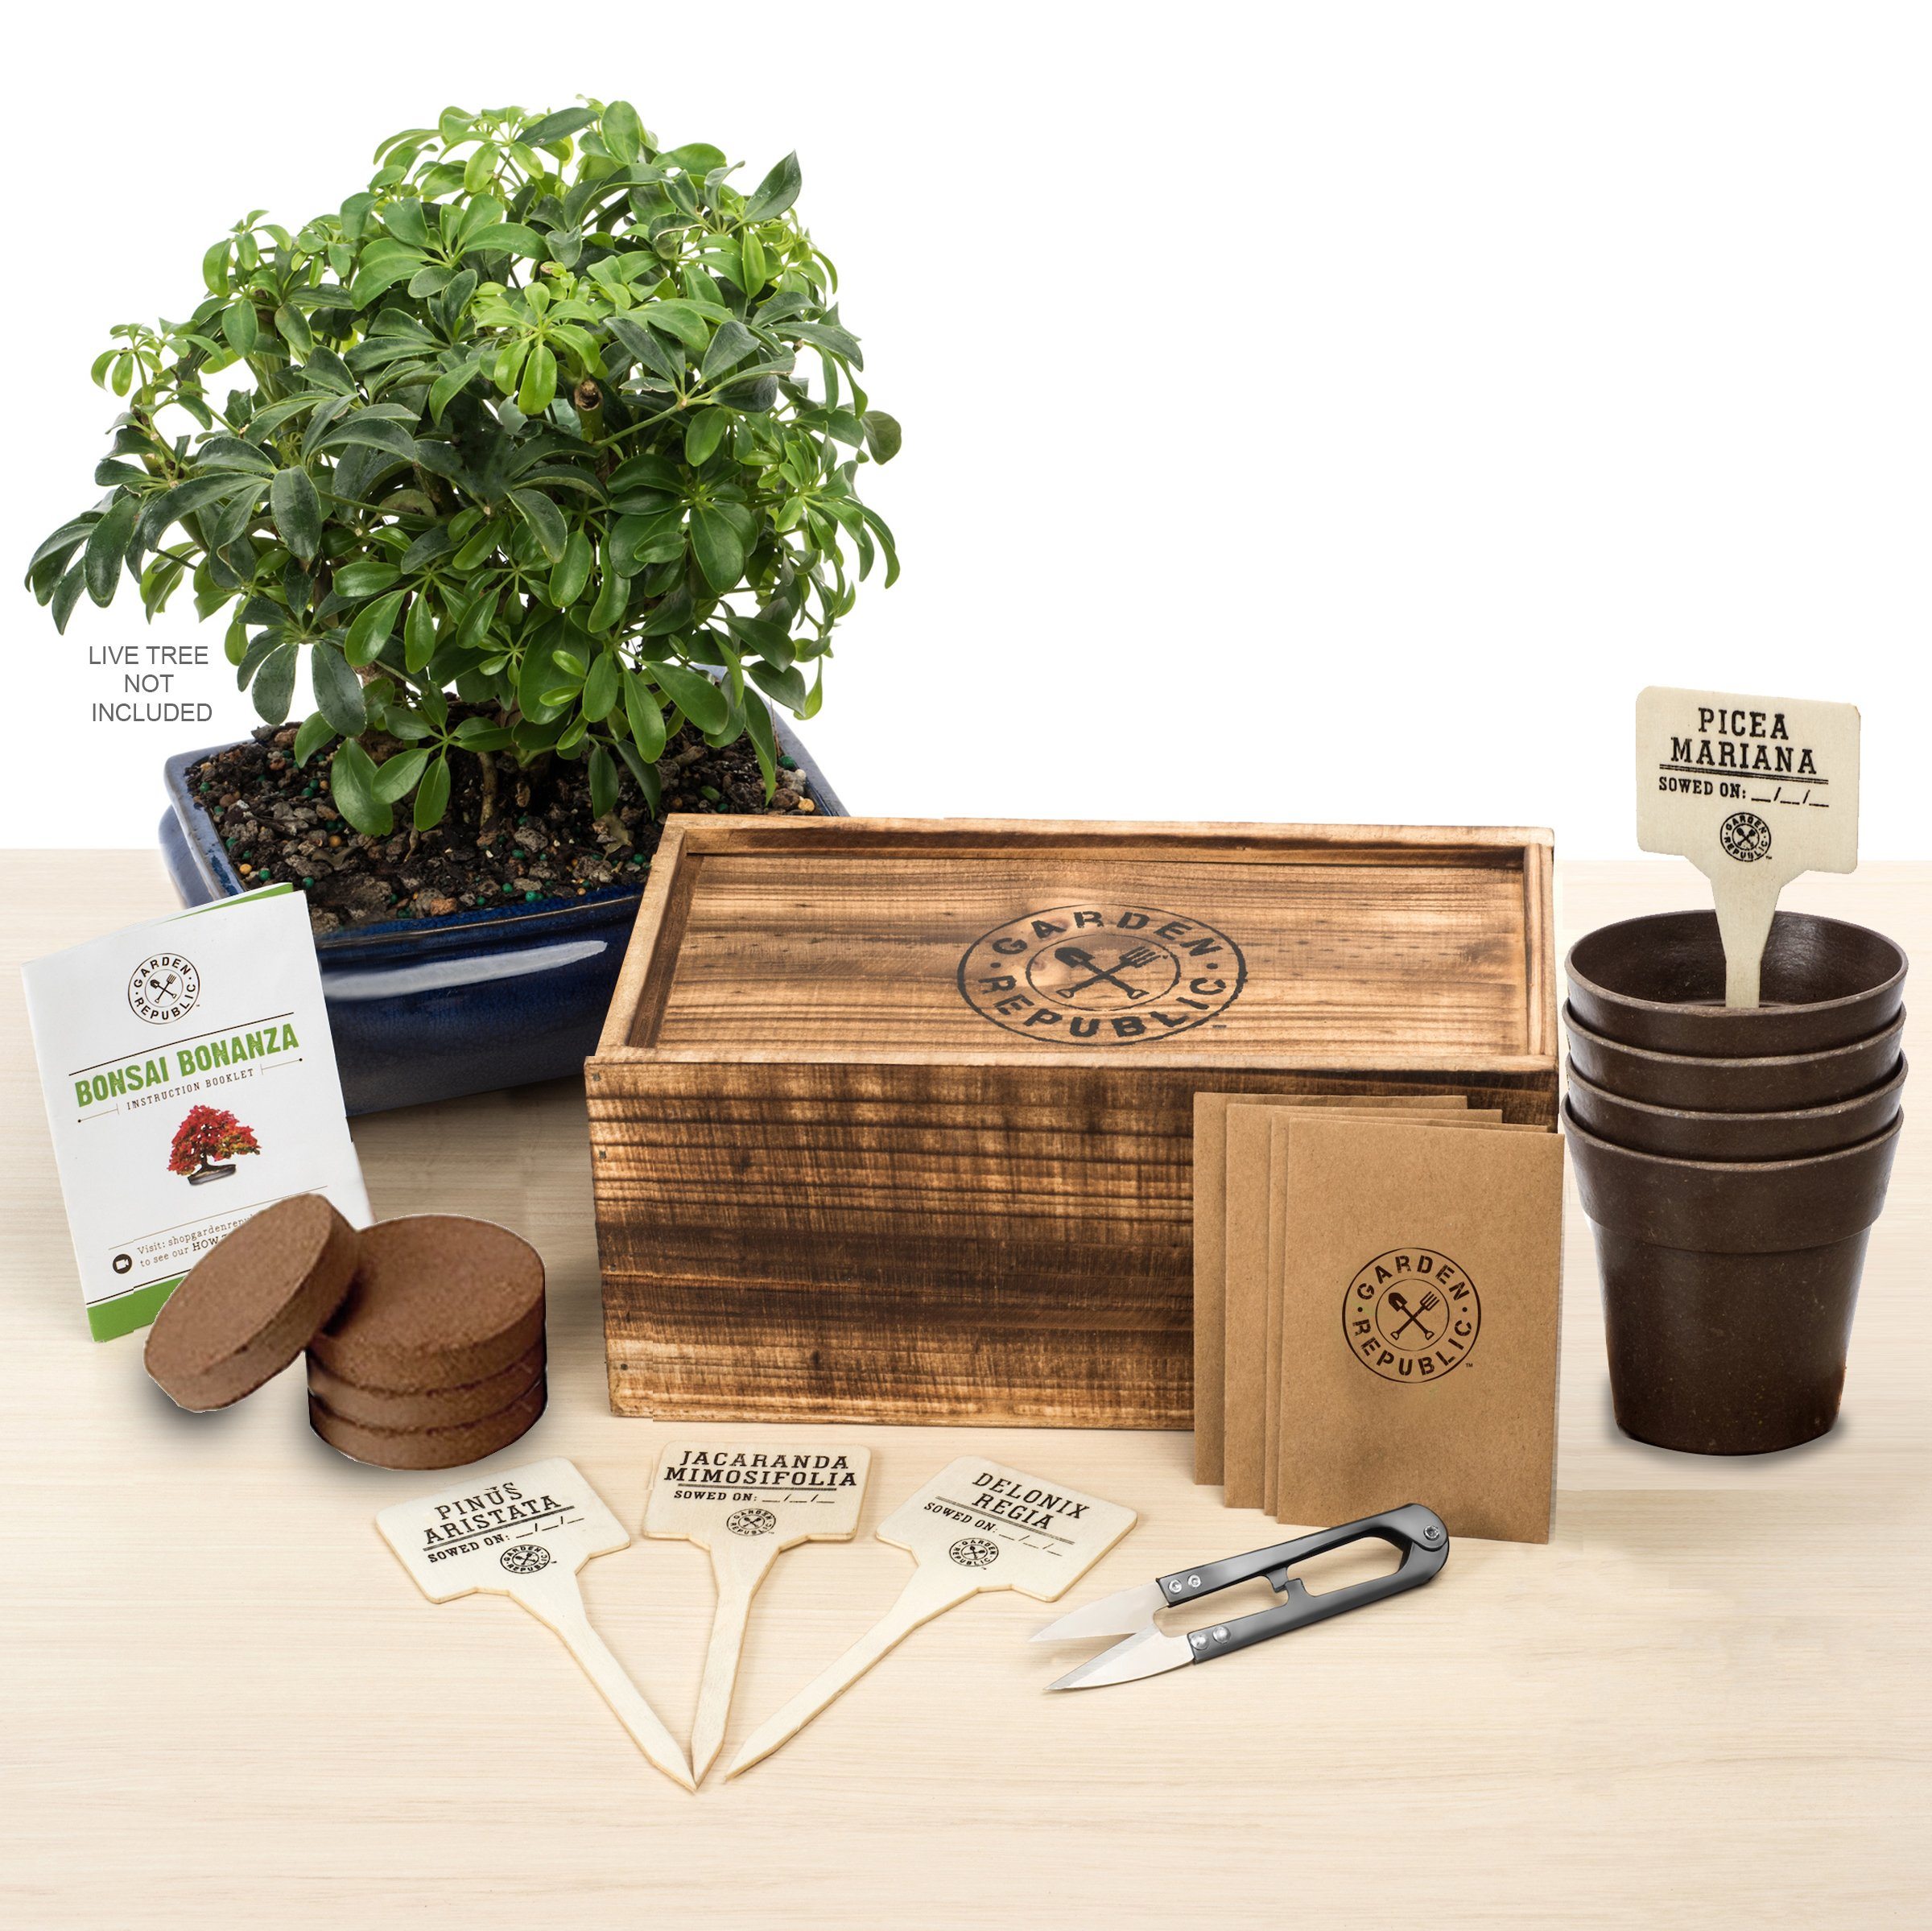 Buy Bonsai Tree Seed Starter Kit Mini Bonsai Plant Growing Kit 4 Types Of Seeds Potting Soil Recycled Bamboo Pots Pruning Shears Scissor Tool Plant Markers Wood Gift Box Ebook